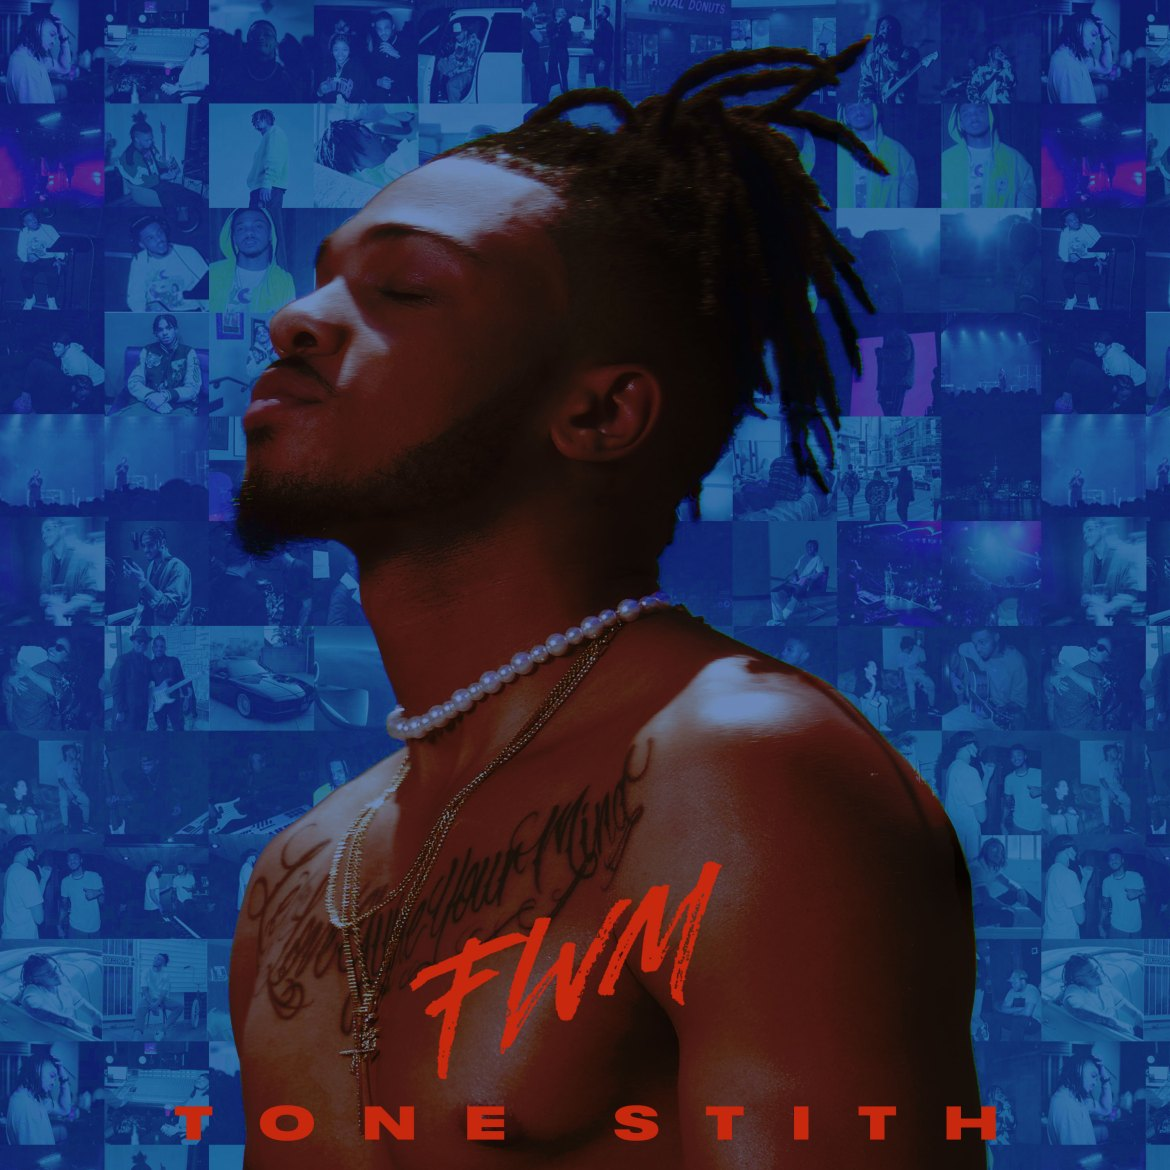 """Tone Stith Releases New Project """"FWM"""" Via RCA Records - Official Video For Single """"FWM"""" Out Now - RCA Records"""